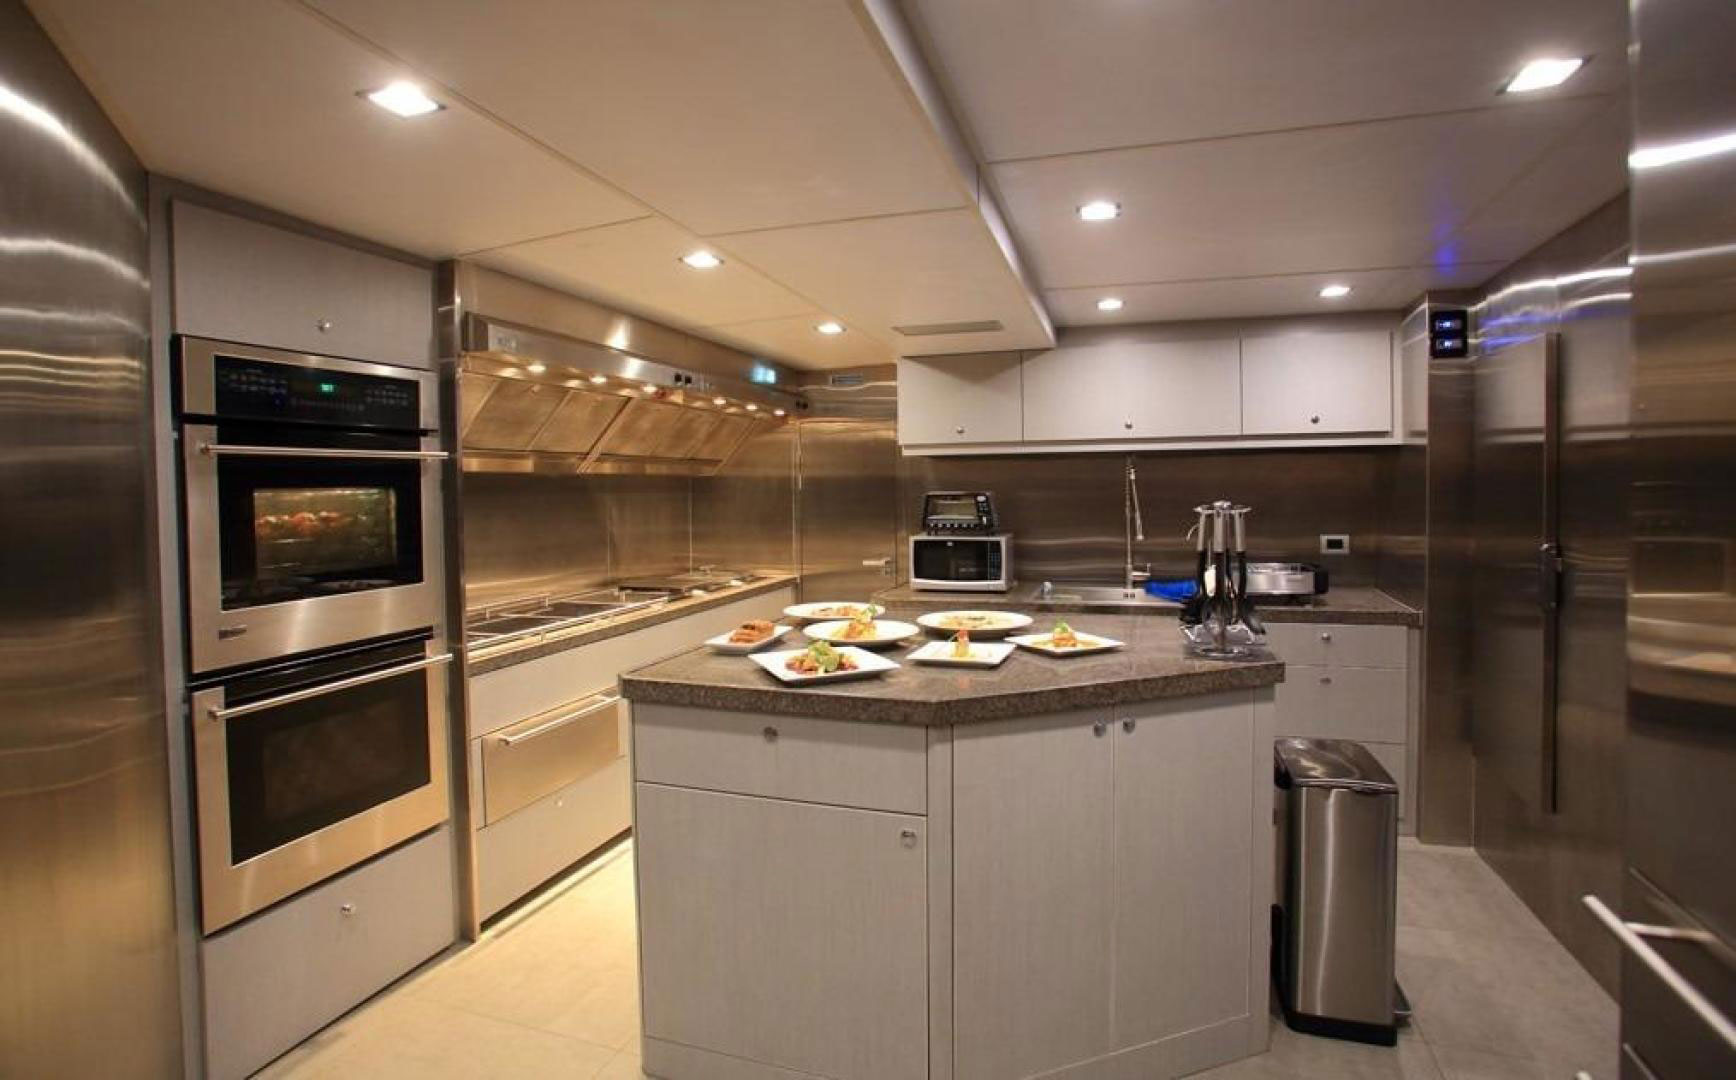 150-ft.-Luxury-Power-Yacht-–-Up-to-200-People - galley